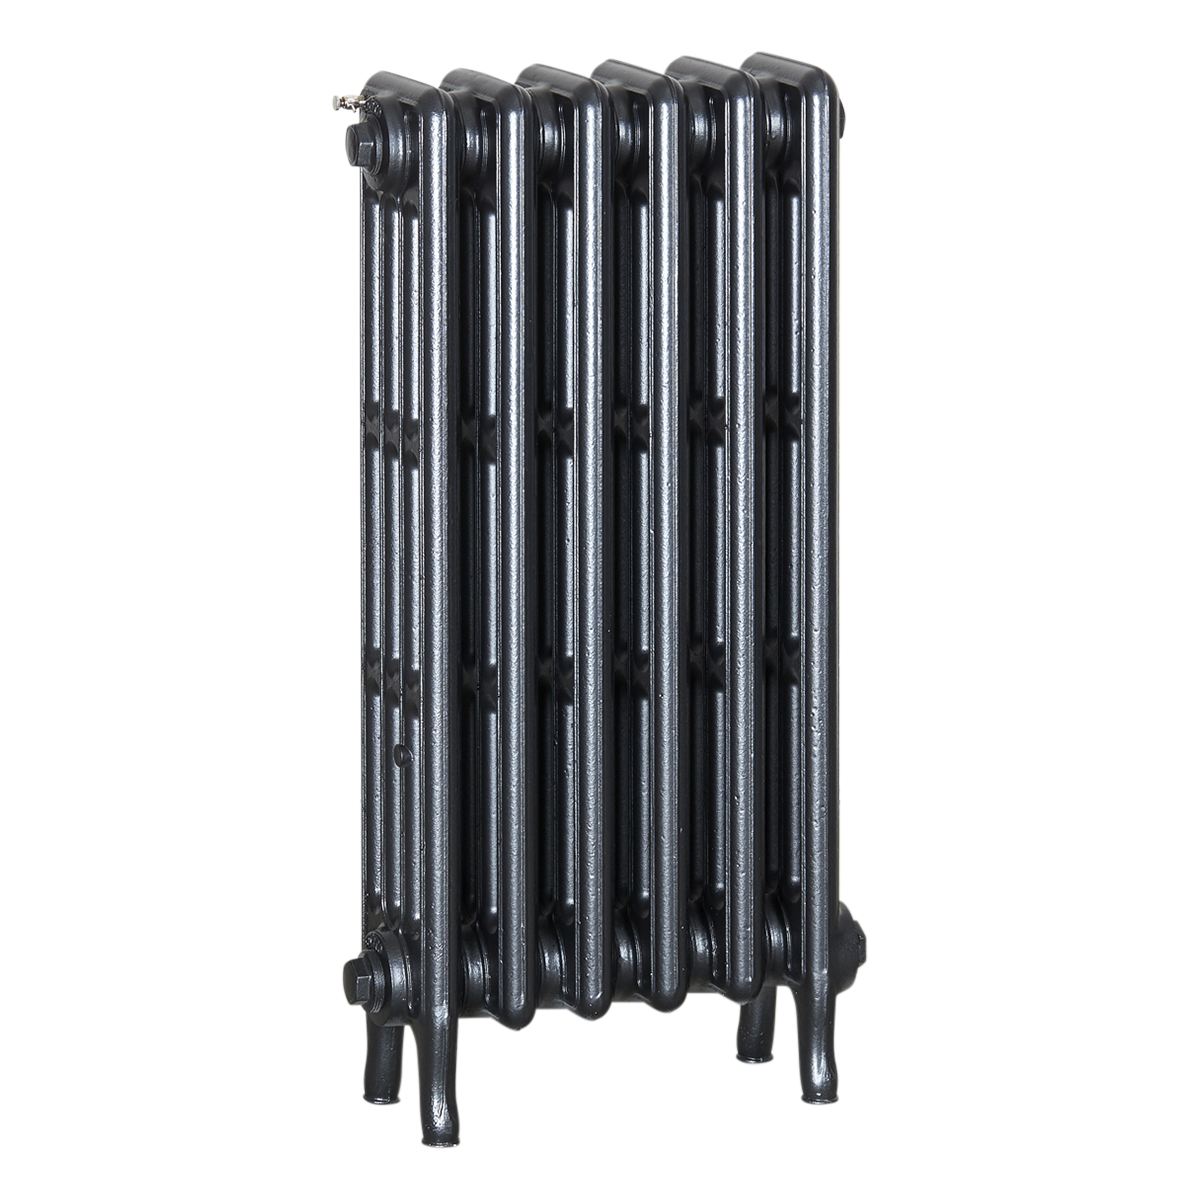 Ironworks Radiators Inc. refurbished cast iron radiator Fairbank in Black Pearl metallic